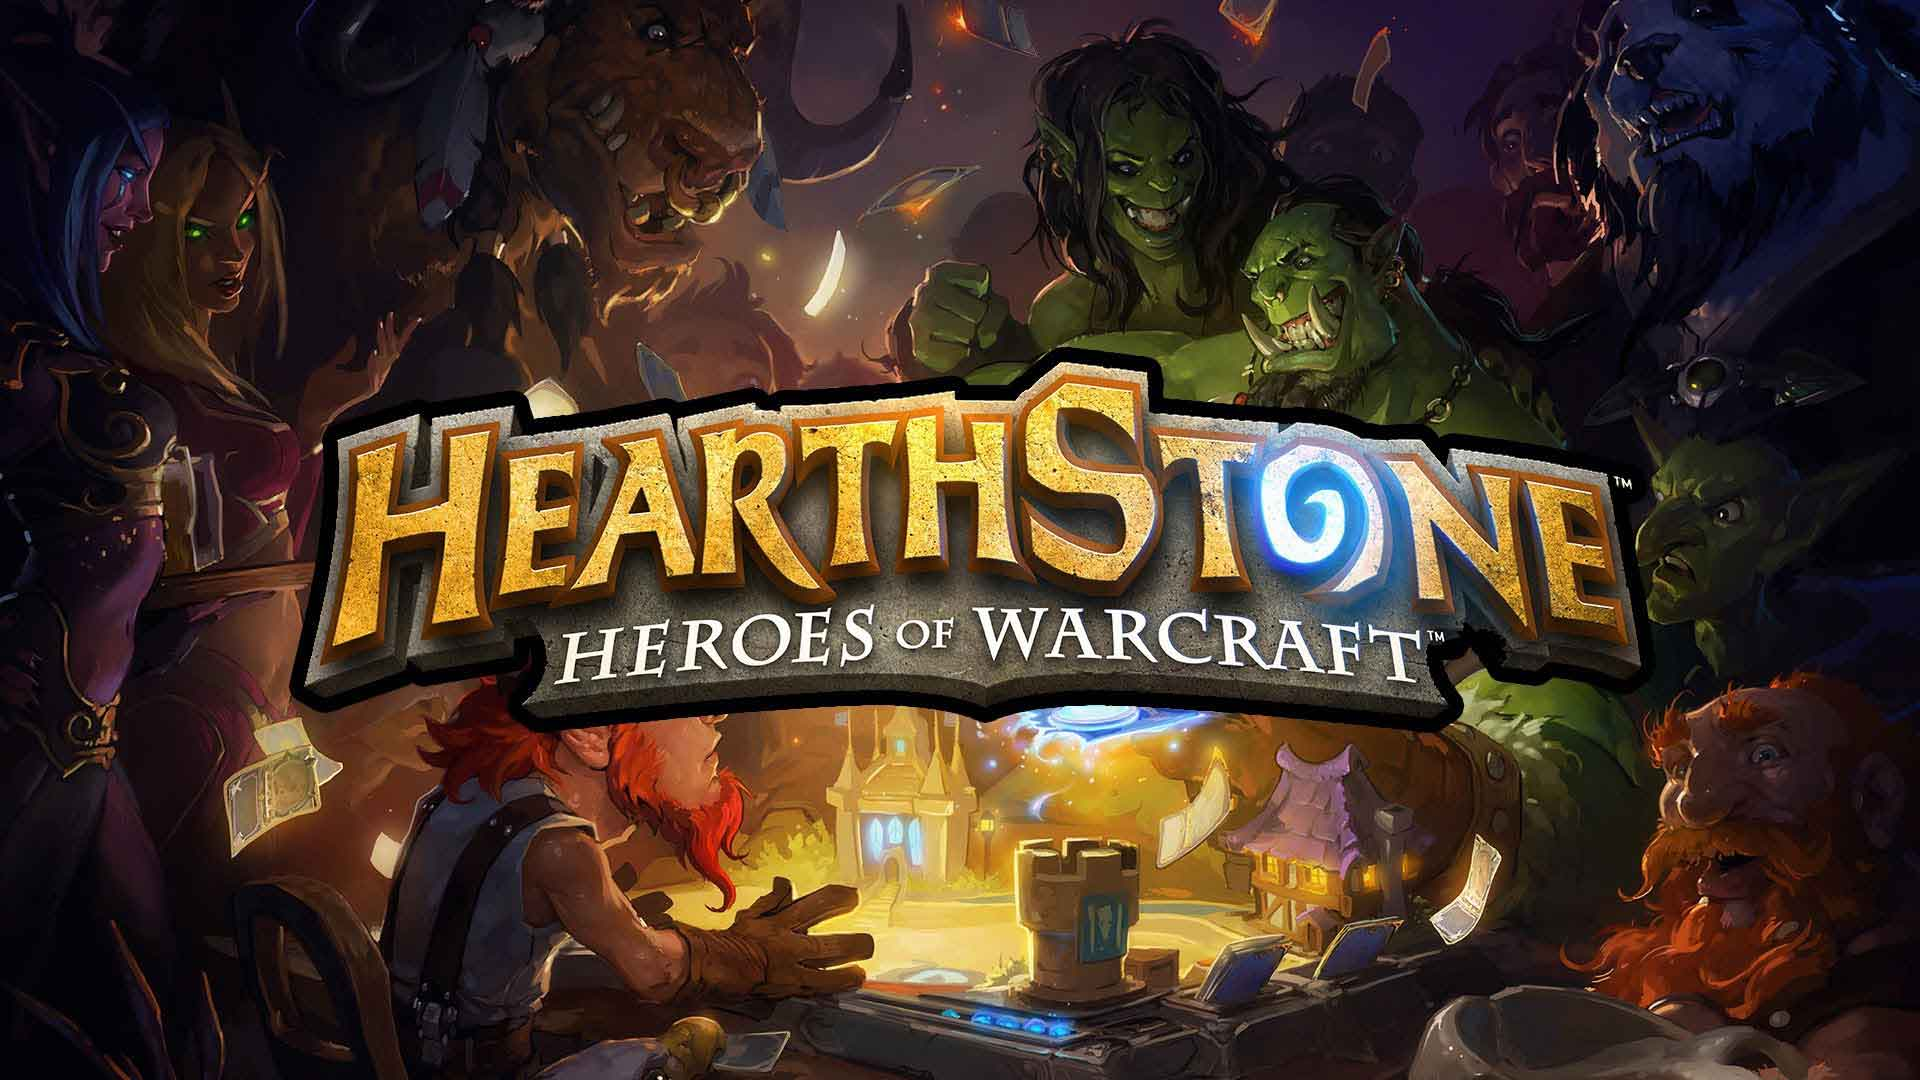 WOW,Wracraft,Warcraft II: Tides of Darkness,Warcraft: Orcs & Humans,Warcraft II: Beyond the Dark Portal,Warcraft III: Reign of Chaos,World of Warcraft,Warcraft III: The Frozen Throne,Blizzard Entertainment,Blizzard بلیزارد,وارکرفت,Warcraft III,Warcraft II,Battle.net,جهان وارکرفت,Arthas,Illidan,Lich King,Dota,Dota2,TD,Xhero,MMORPG,بازی چند نفره,بازی آنلاین,The Frozen Throne,Reign of Chaos,Orc,Human,Horde,Alliance,داستان های وارکرفت,World of Warcraft: Classic,World of Warcraft: The Burning Crusade,World of Warcraft: Battle for Azeroth,World of Warcraft: Legion,World of Warcraft: Warlords of Draenor,Hearthstone: Heroes of Warcraft,Hearthstone,World of Warcraft: Mists of Pandaria,World of Warcraft: Cataclysm,World of Warcraft: Wrath of the Lich King,